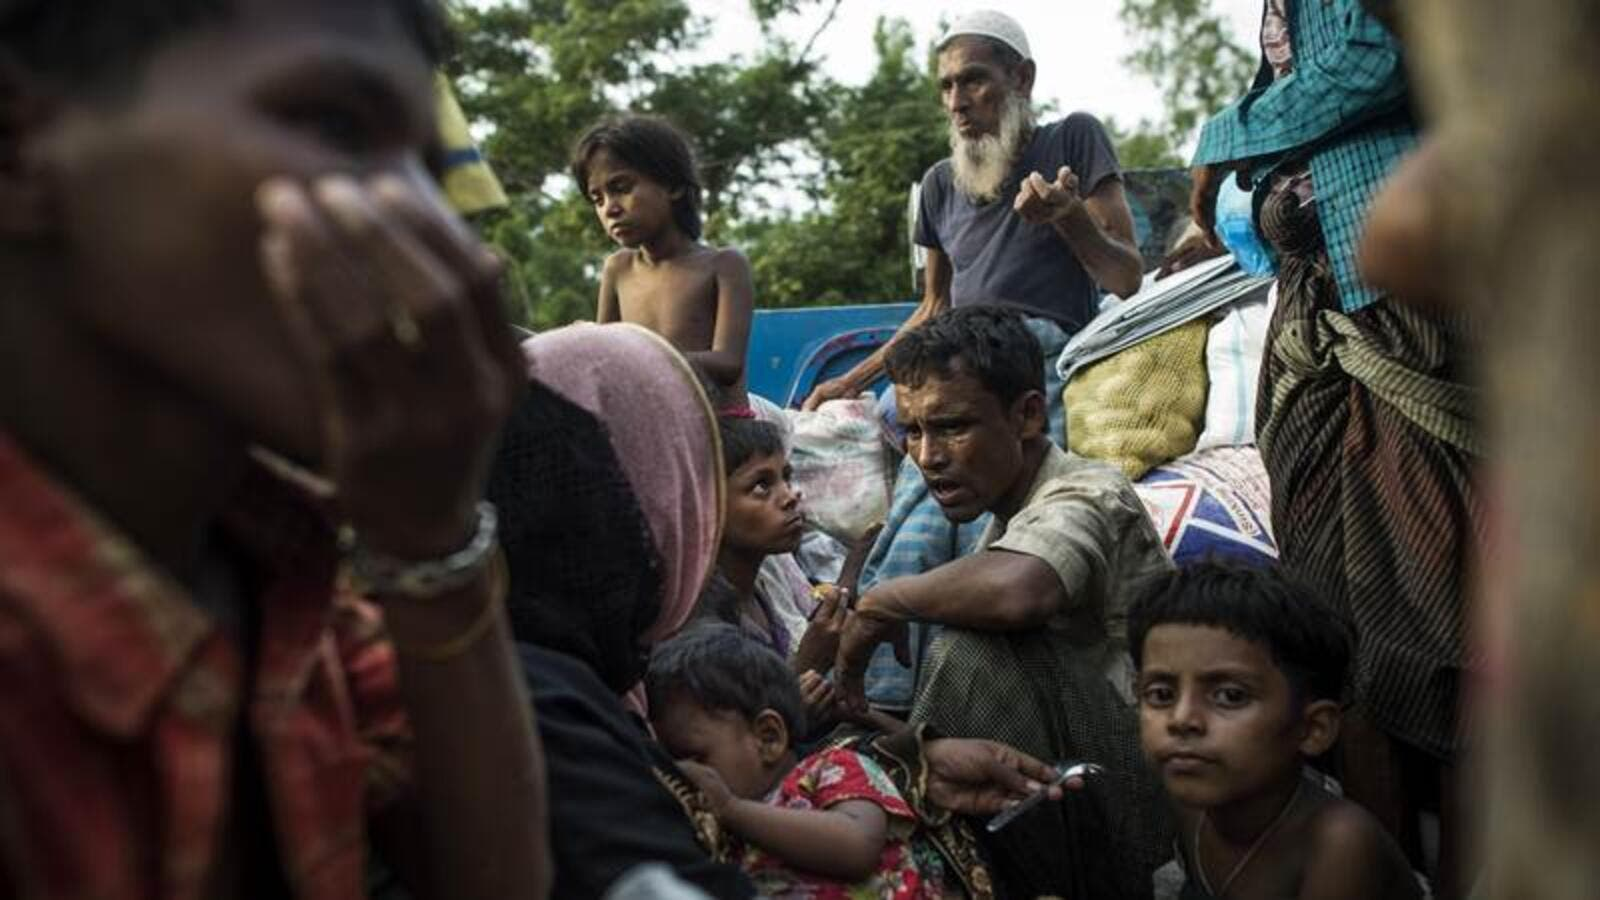 Rohingya refugees, a persecuted minority (AFP/File Photo)